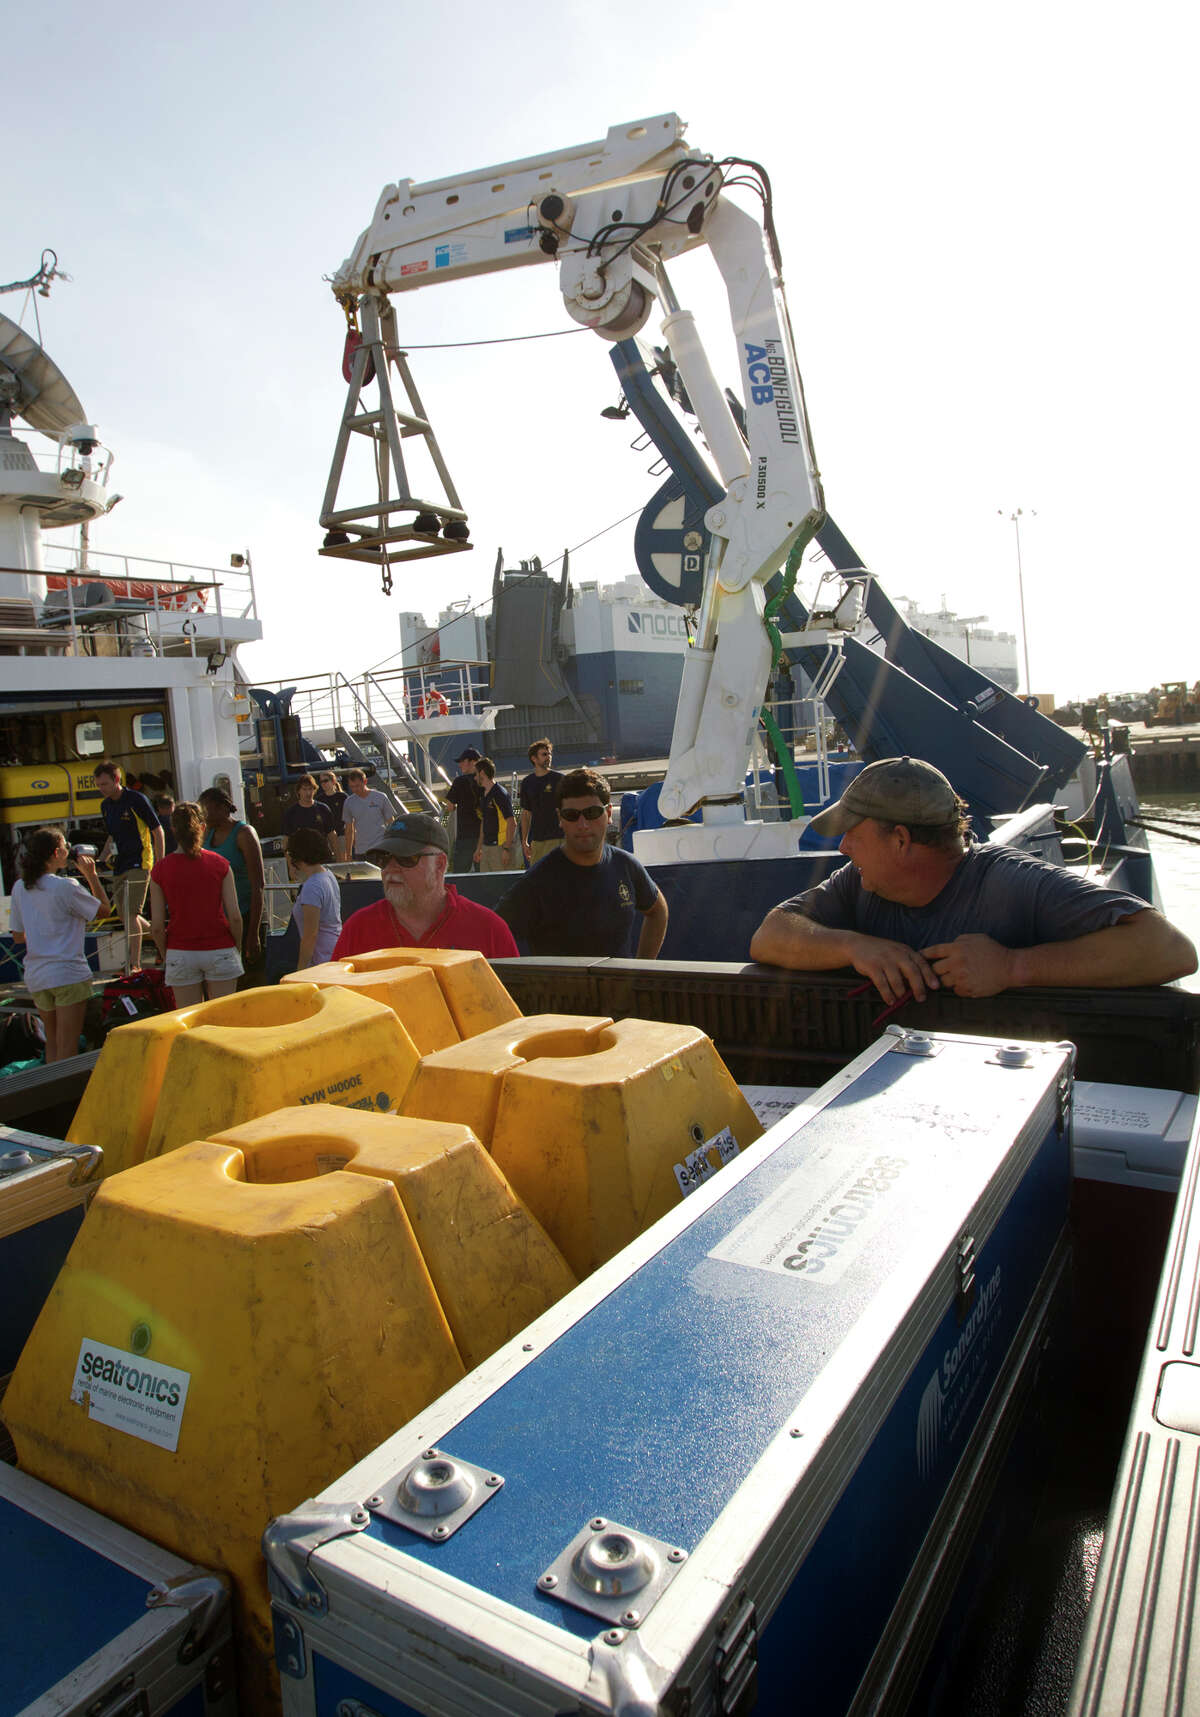 A truck sits loaded with artifacts after a crew returned from an approximately 170-mile voyage off Galveston to investigate a shipwreck on the Nautilus, Thursday, July 25, 2013, in Galveston. The crew brought back about 60 artifacts and plan to determine the ship's origin from studying the artifacts.